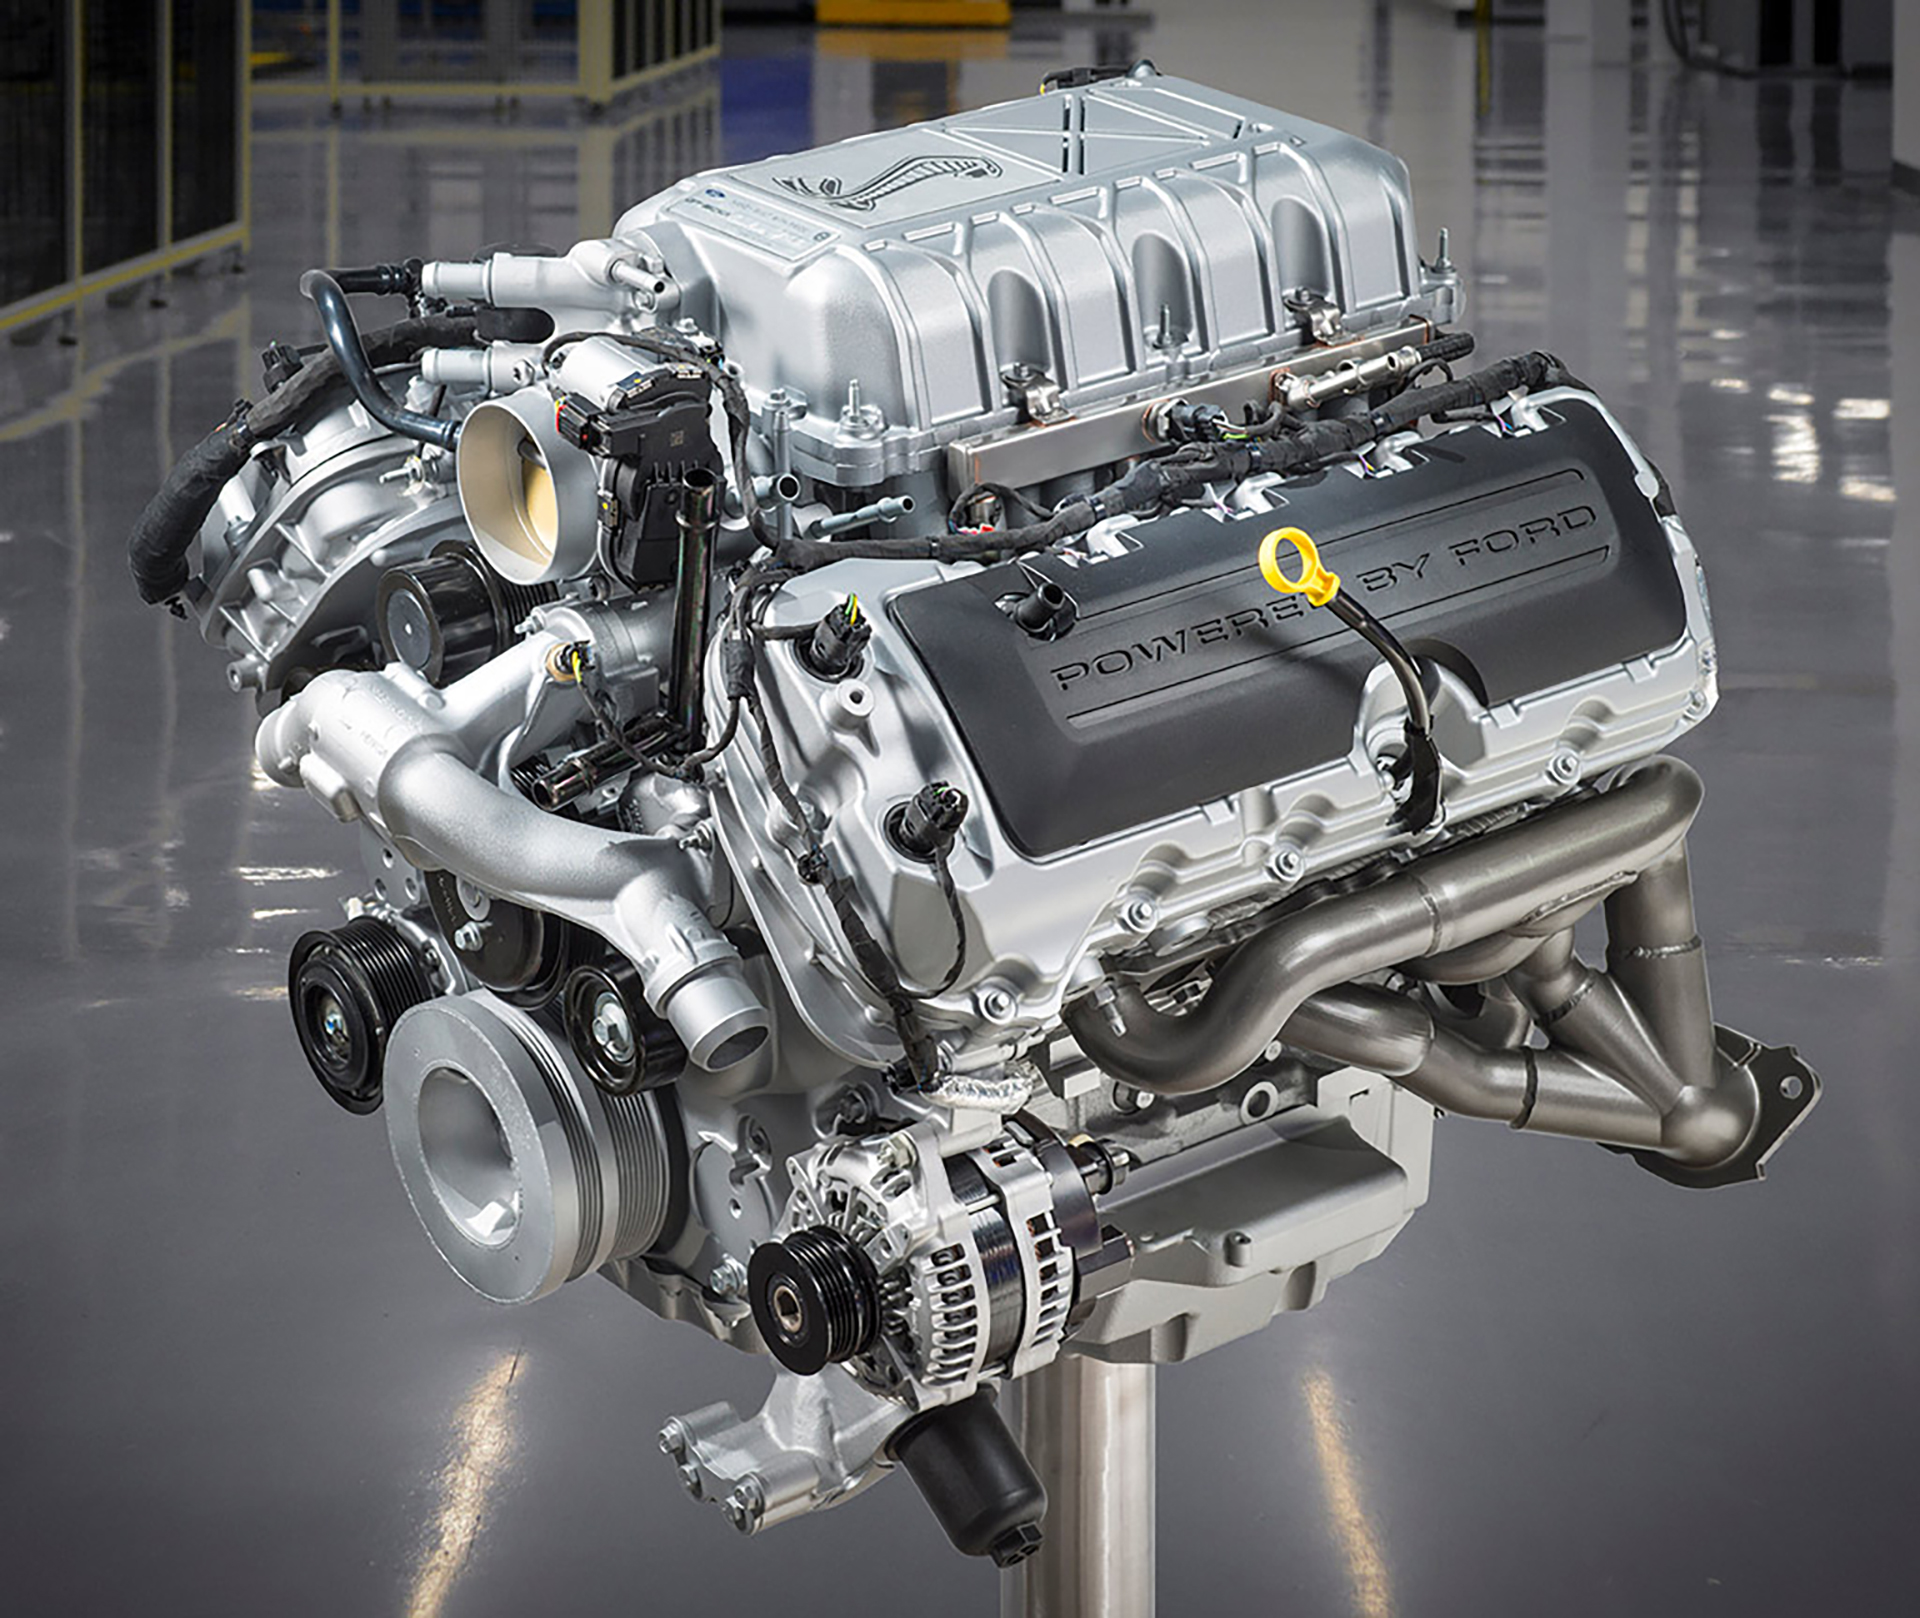 Ford Mustang 2020 Shelby GT500 - 2019 - engine / moteur - Ford 5.2L V8